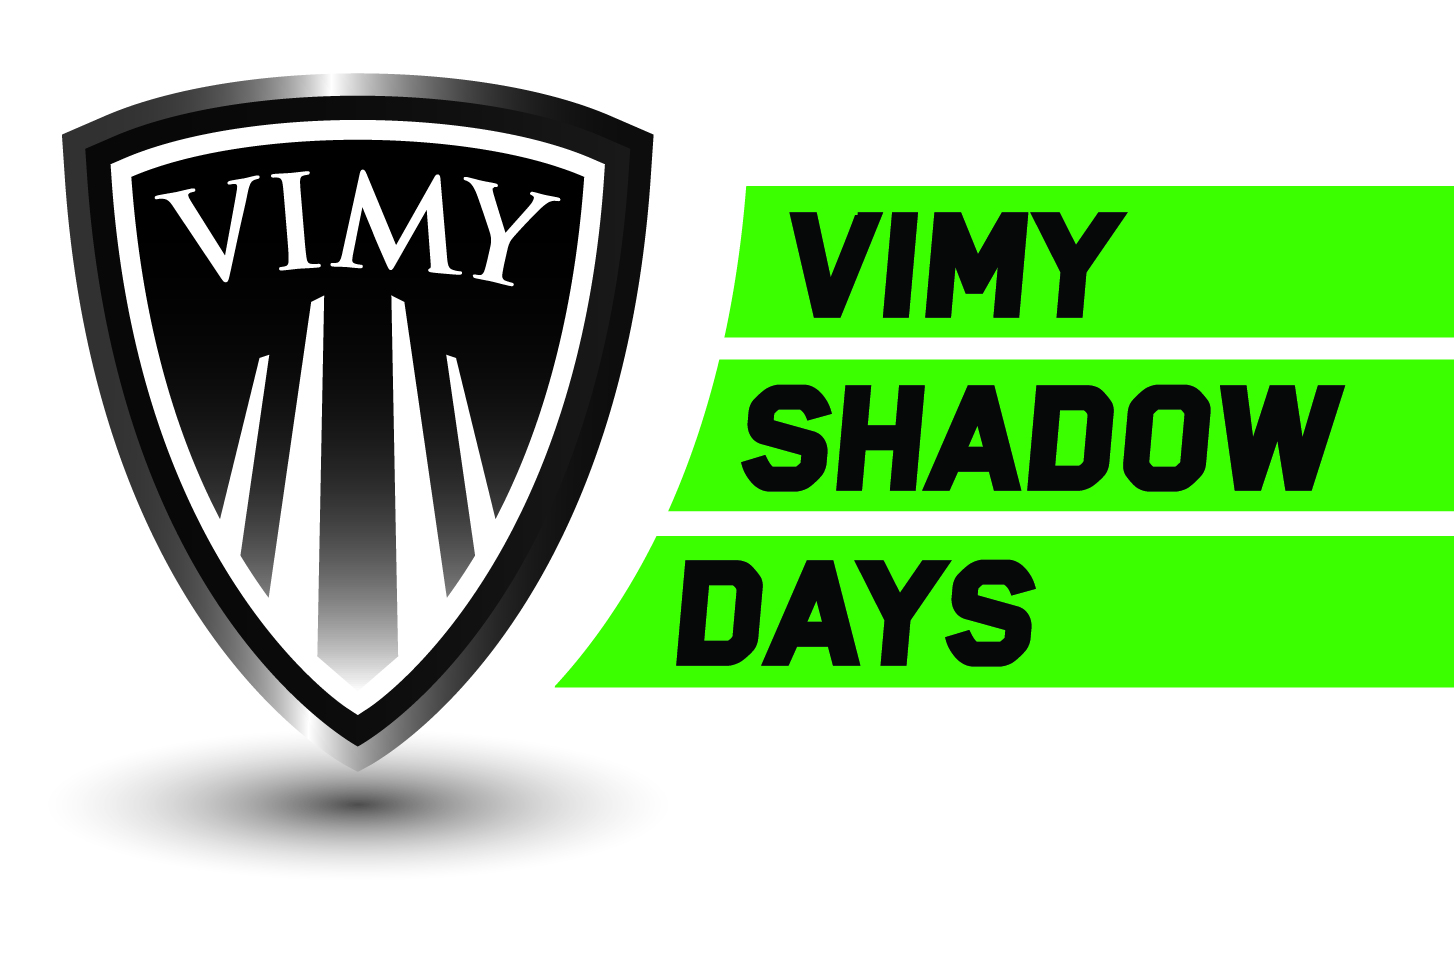 Vimy_shadow_article-01